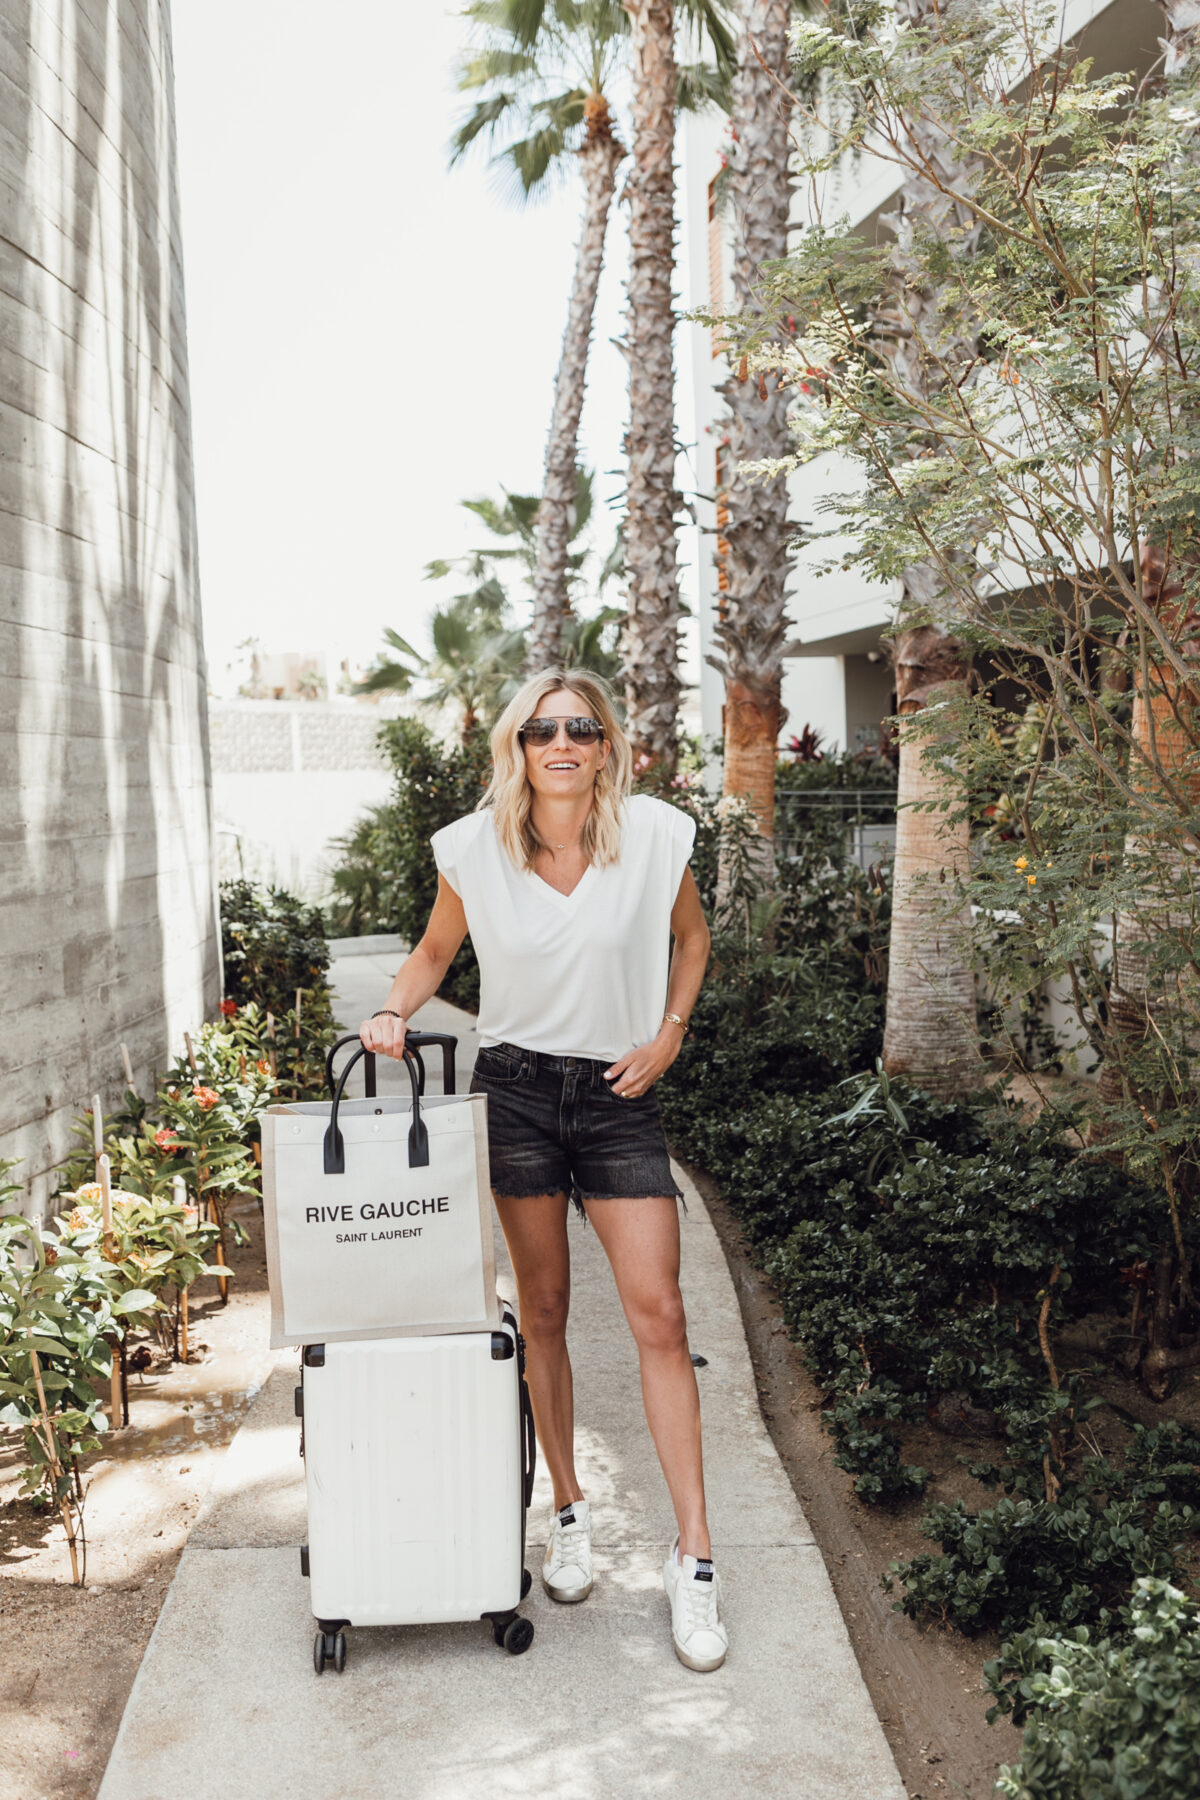 woman wearing white top and black shorts for best of april 2021 and holding a luggage